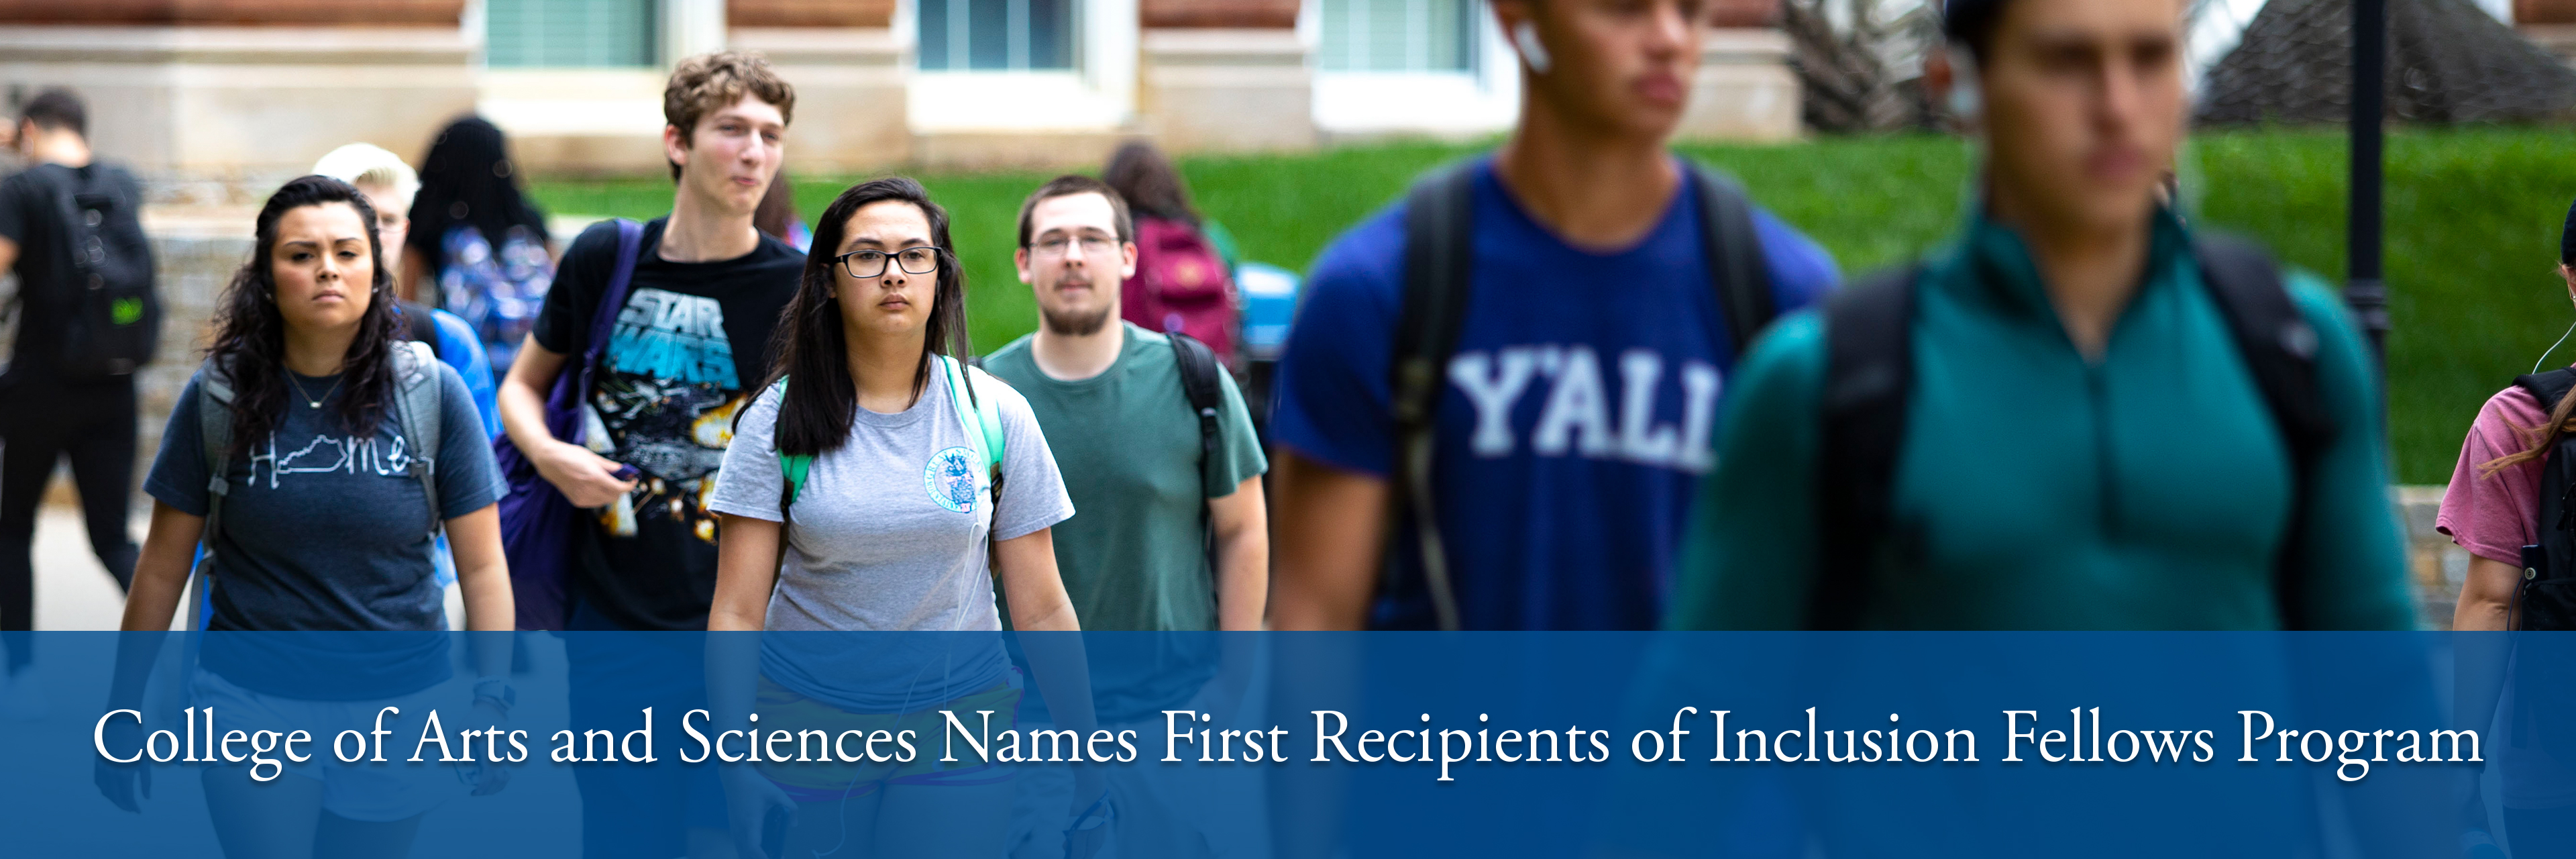 College of Arts and Sciences Names First Recipients of Inclusion